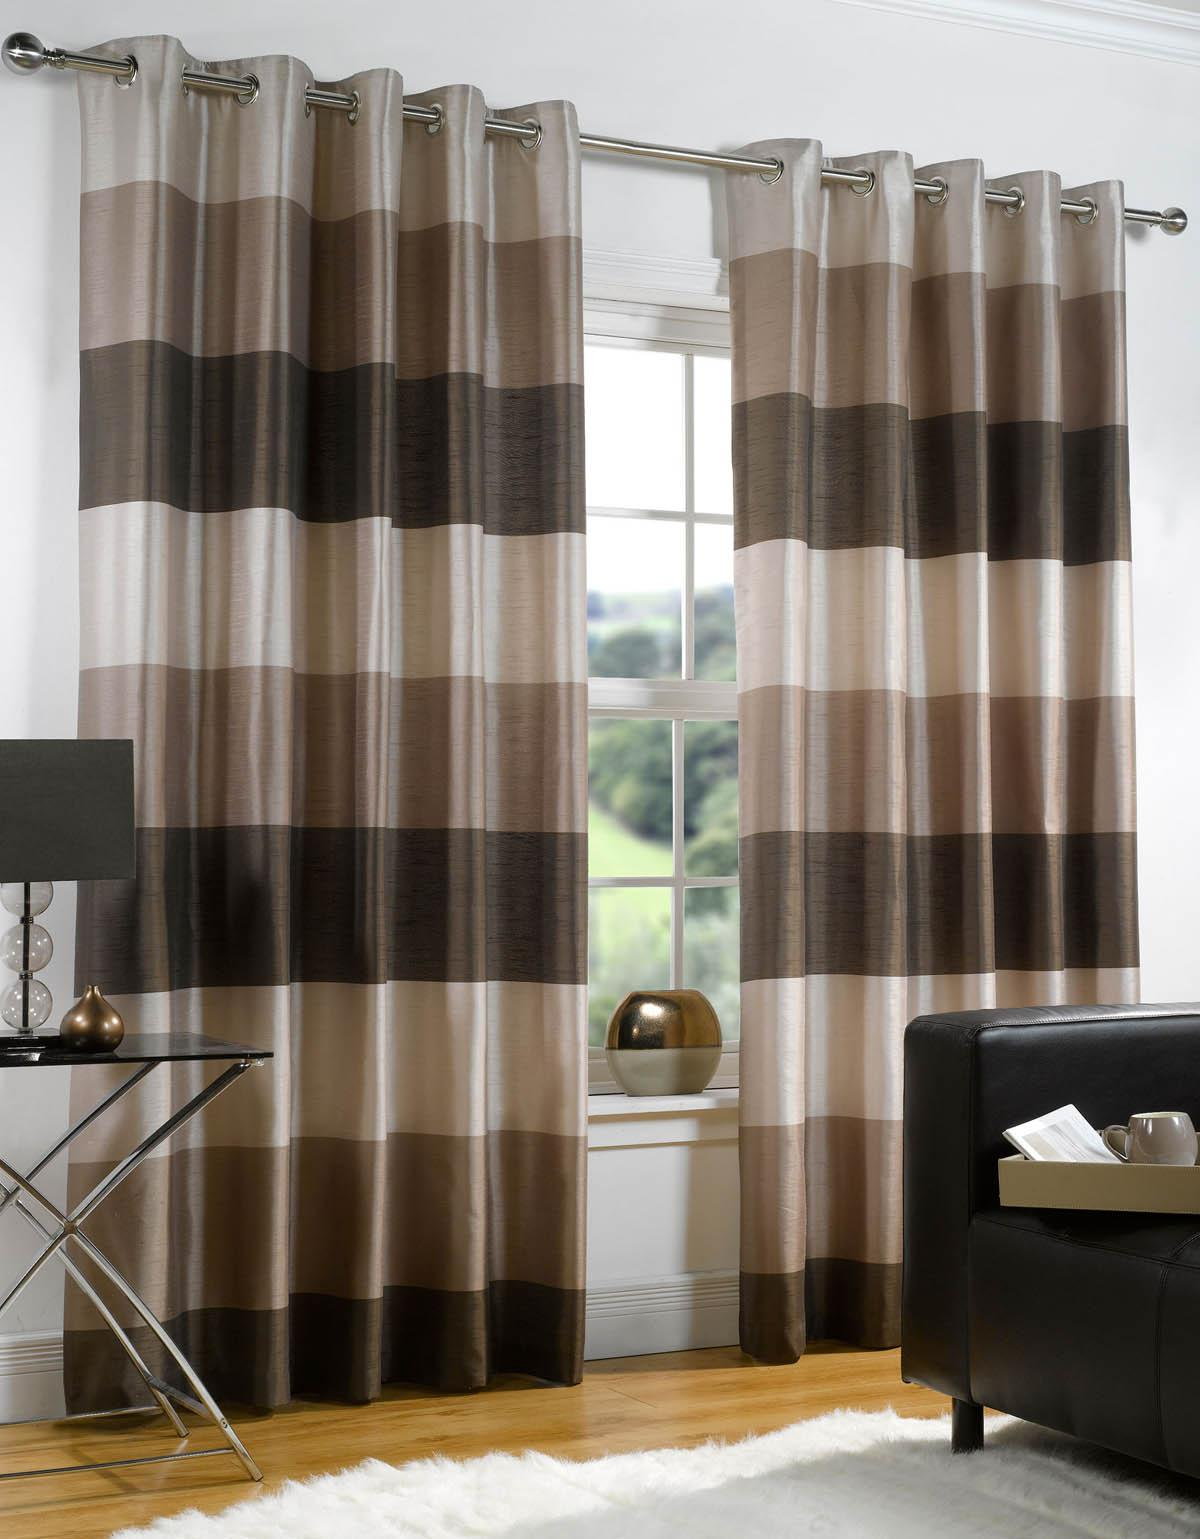 Rio-Chocolate 20 Hottest Curtain Designs for 2017